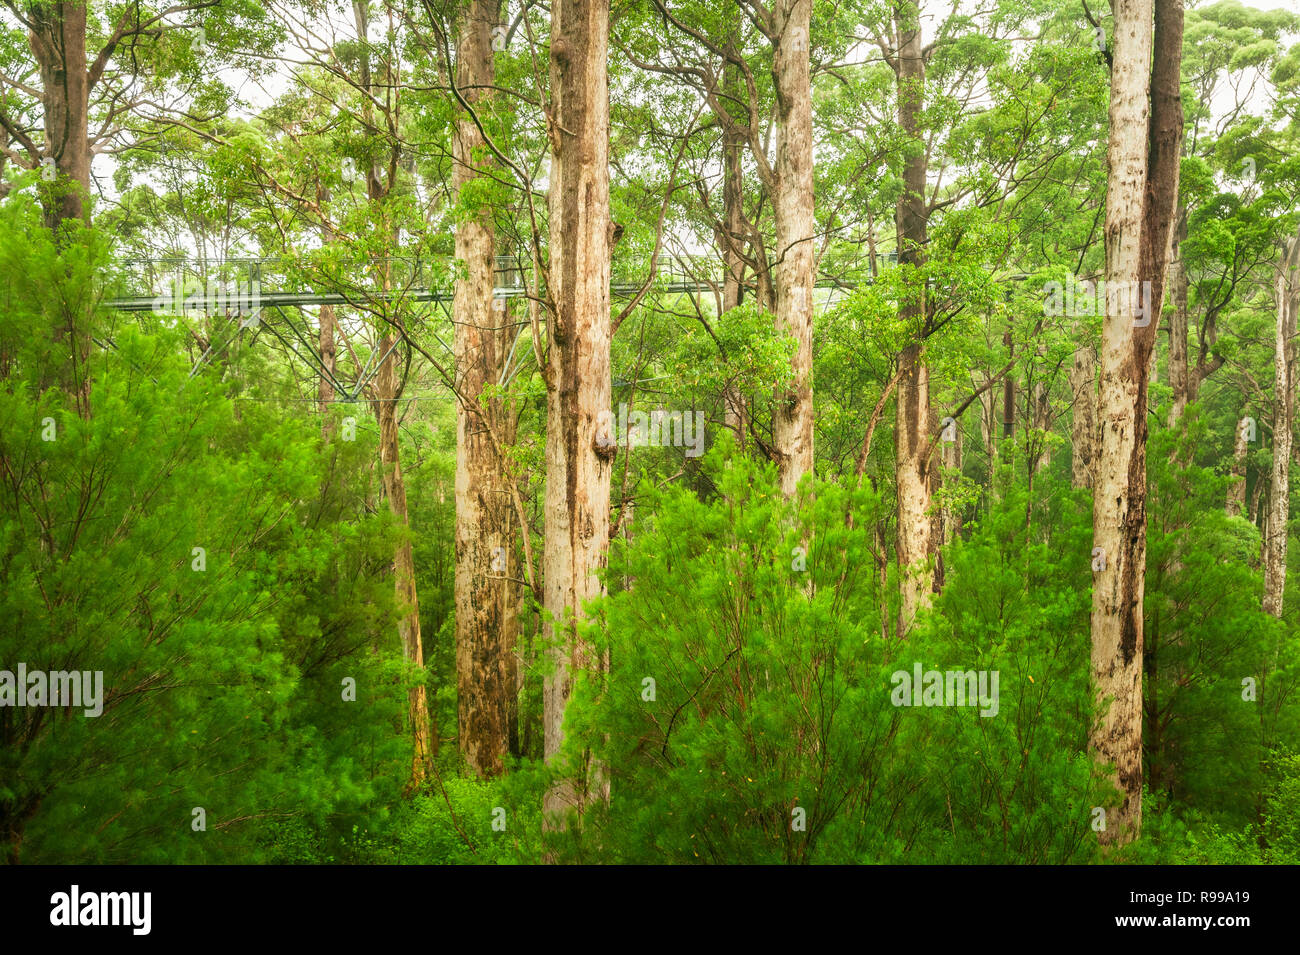 Famous Tree Top Walk in the ancient forest of Walpole-Nornalup National Park. - Stock Image